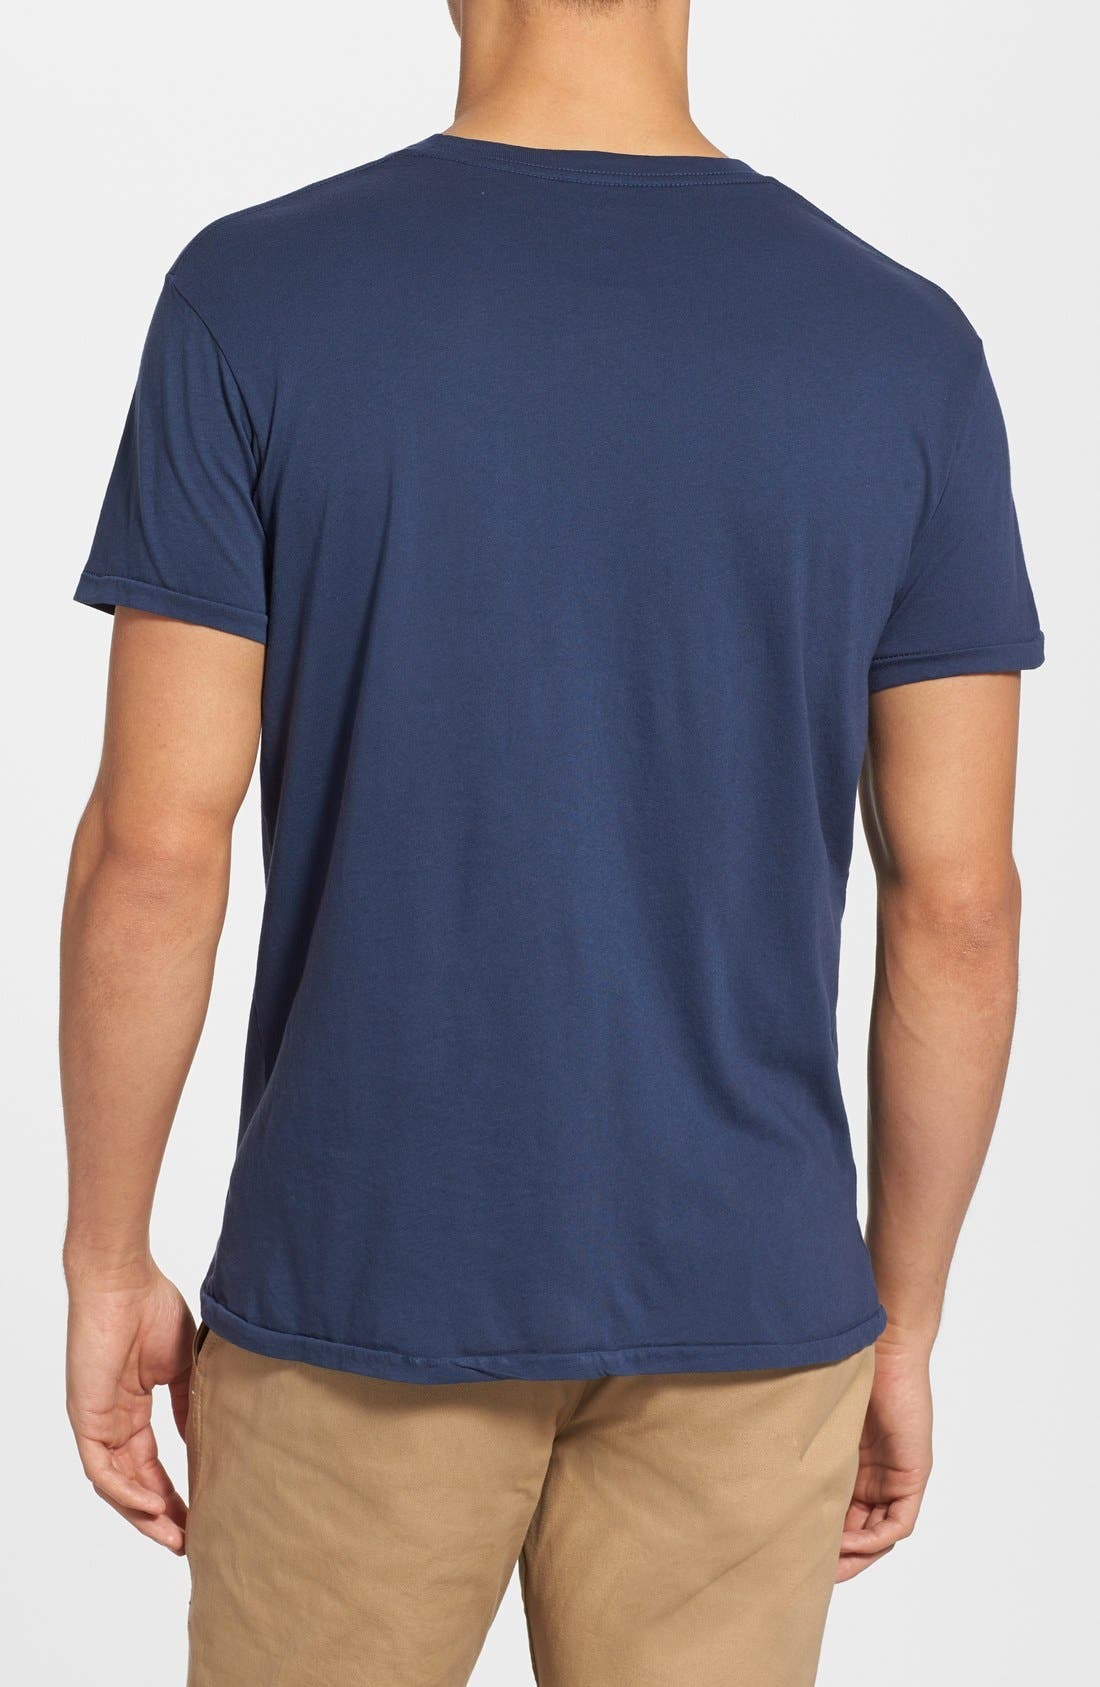 'Waves' Graphic T-Shirt,                             Alternate thumbnail 2, color,                             Navy